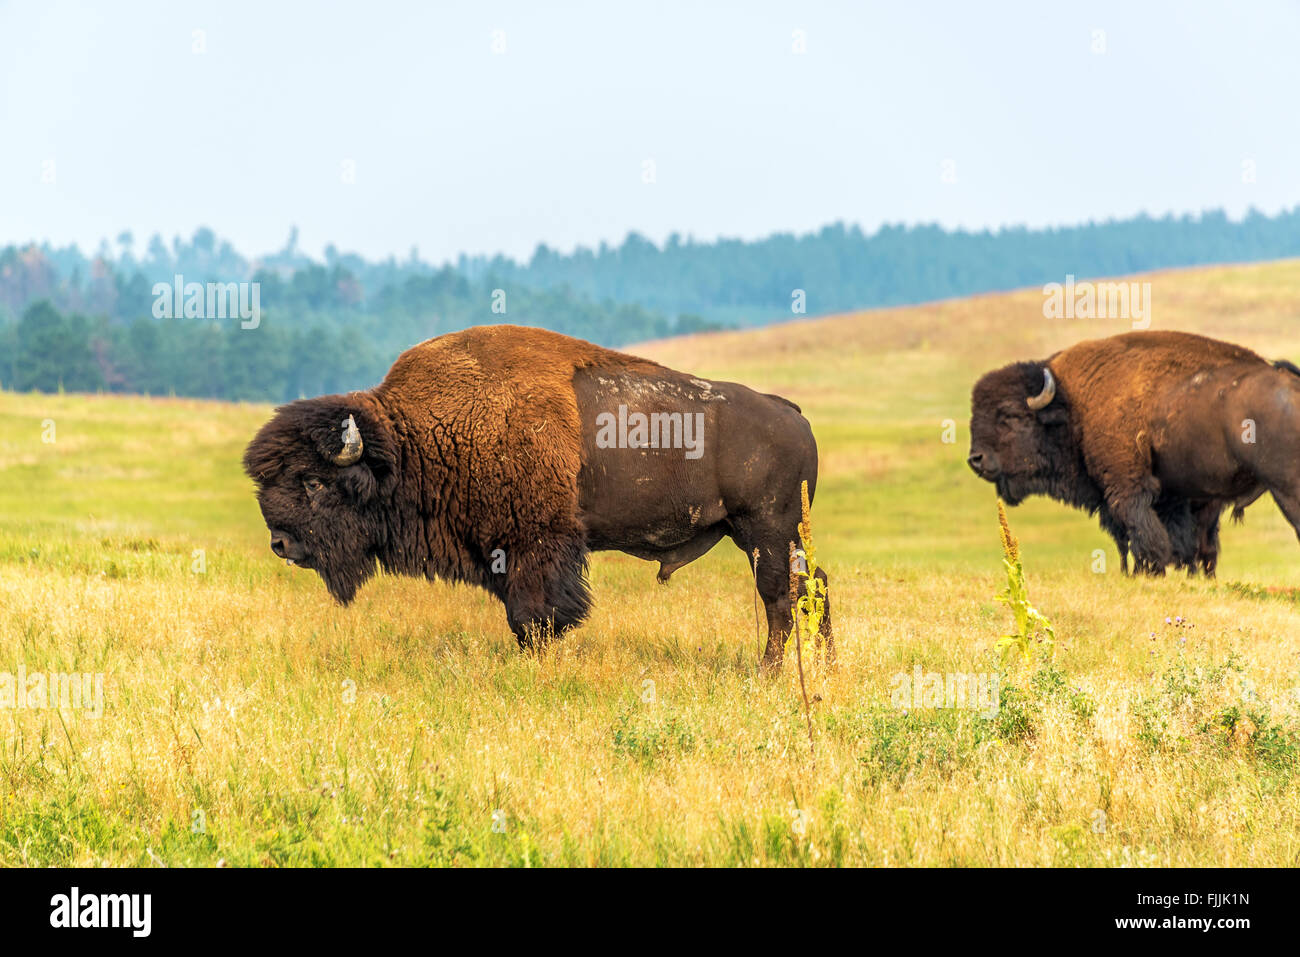 Two bison in Custer State Park, South Dakota - Stock Image